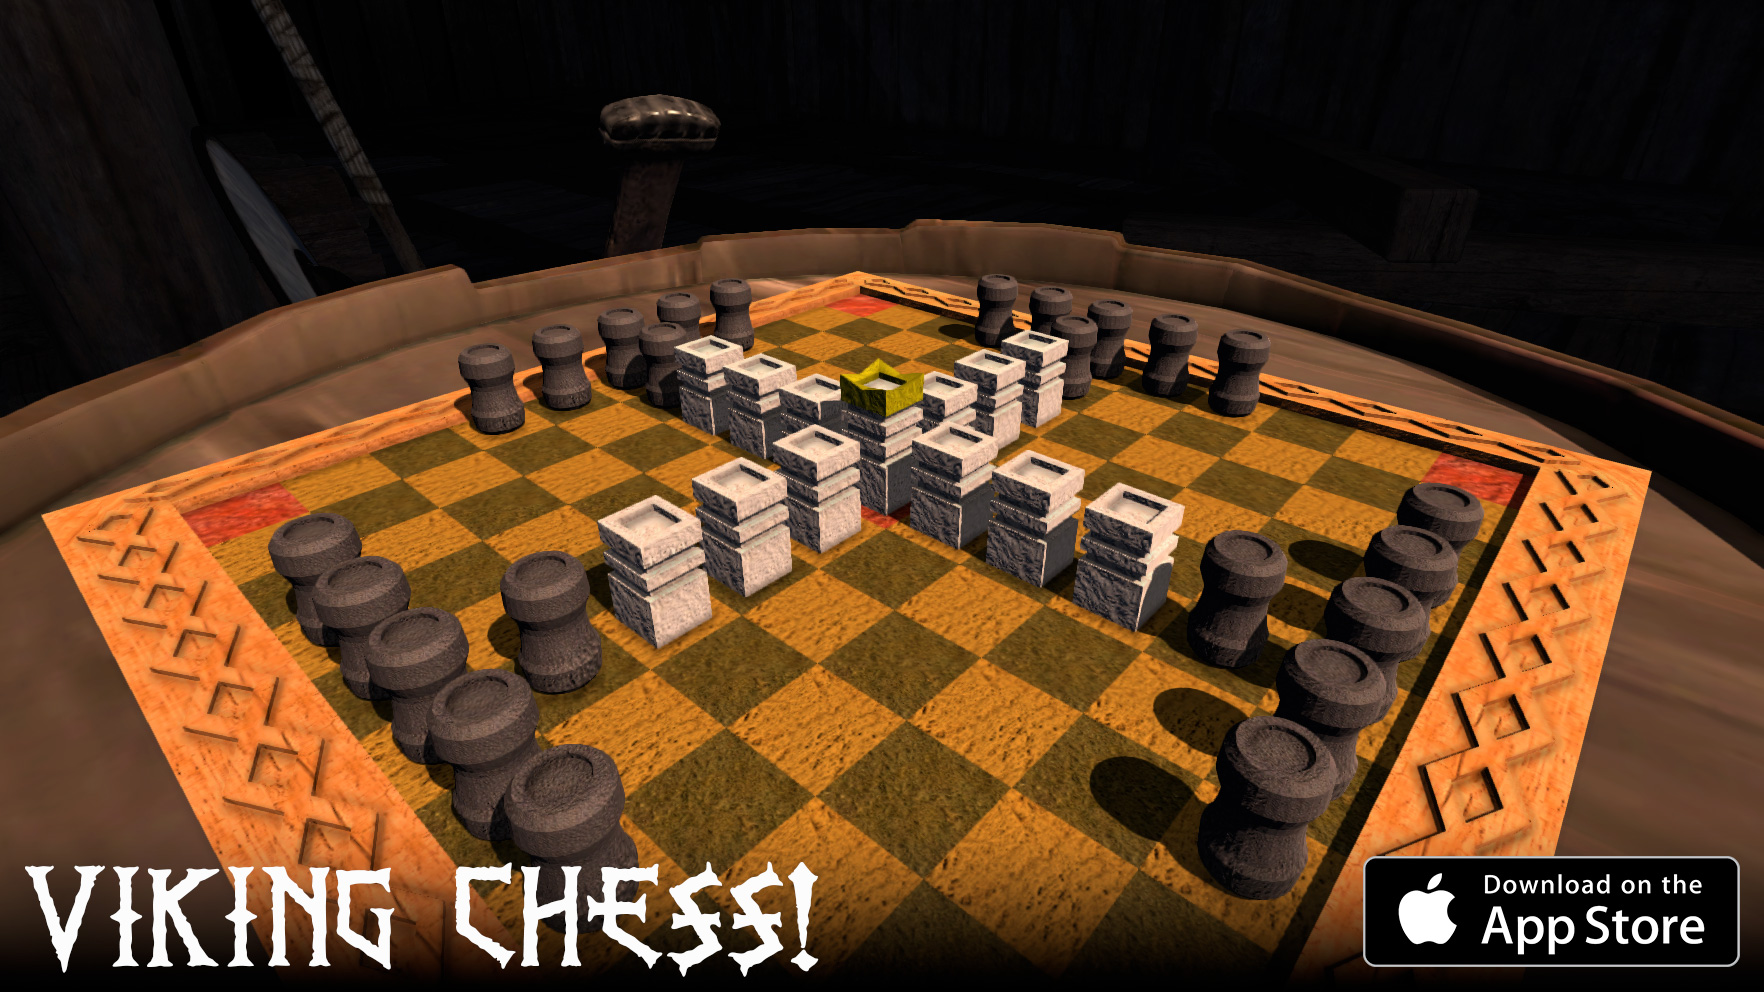 Viking Chess!